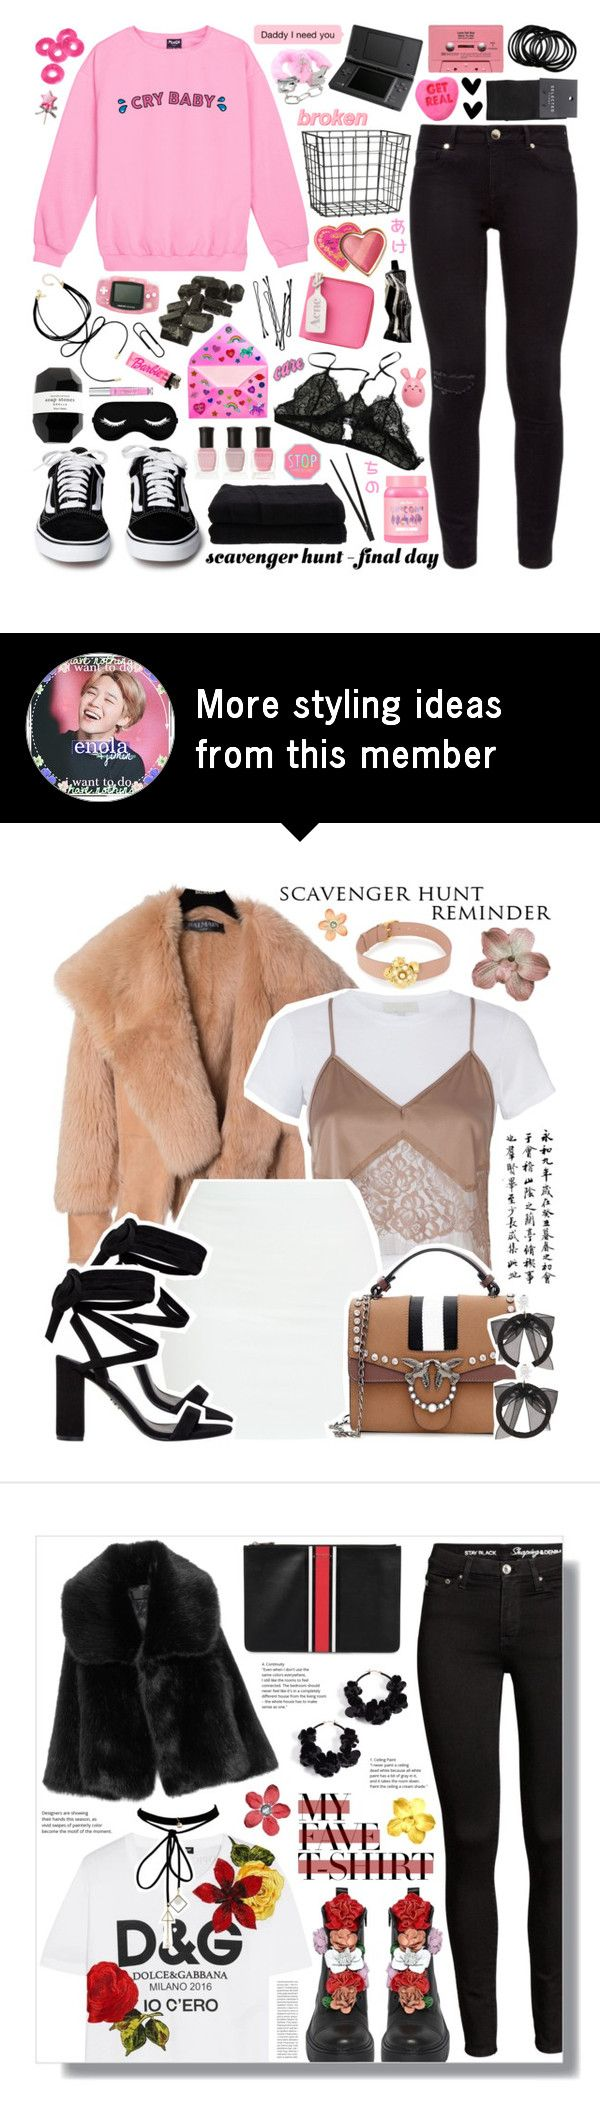 """scavenger hunt - final day"" by soft-bites on Polyvore featuring Ted Baker, H&M, SELECTED, Too Faced Cosmetics, Aesop, Cassia, Acne Studios, INC International Concepts, Lime Crime and Victoria's Secret"